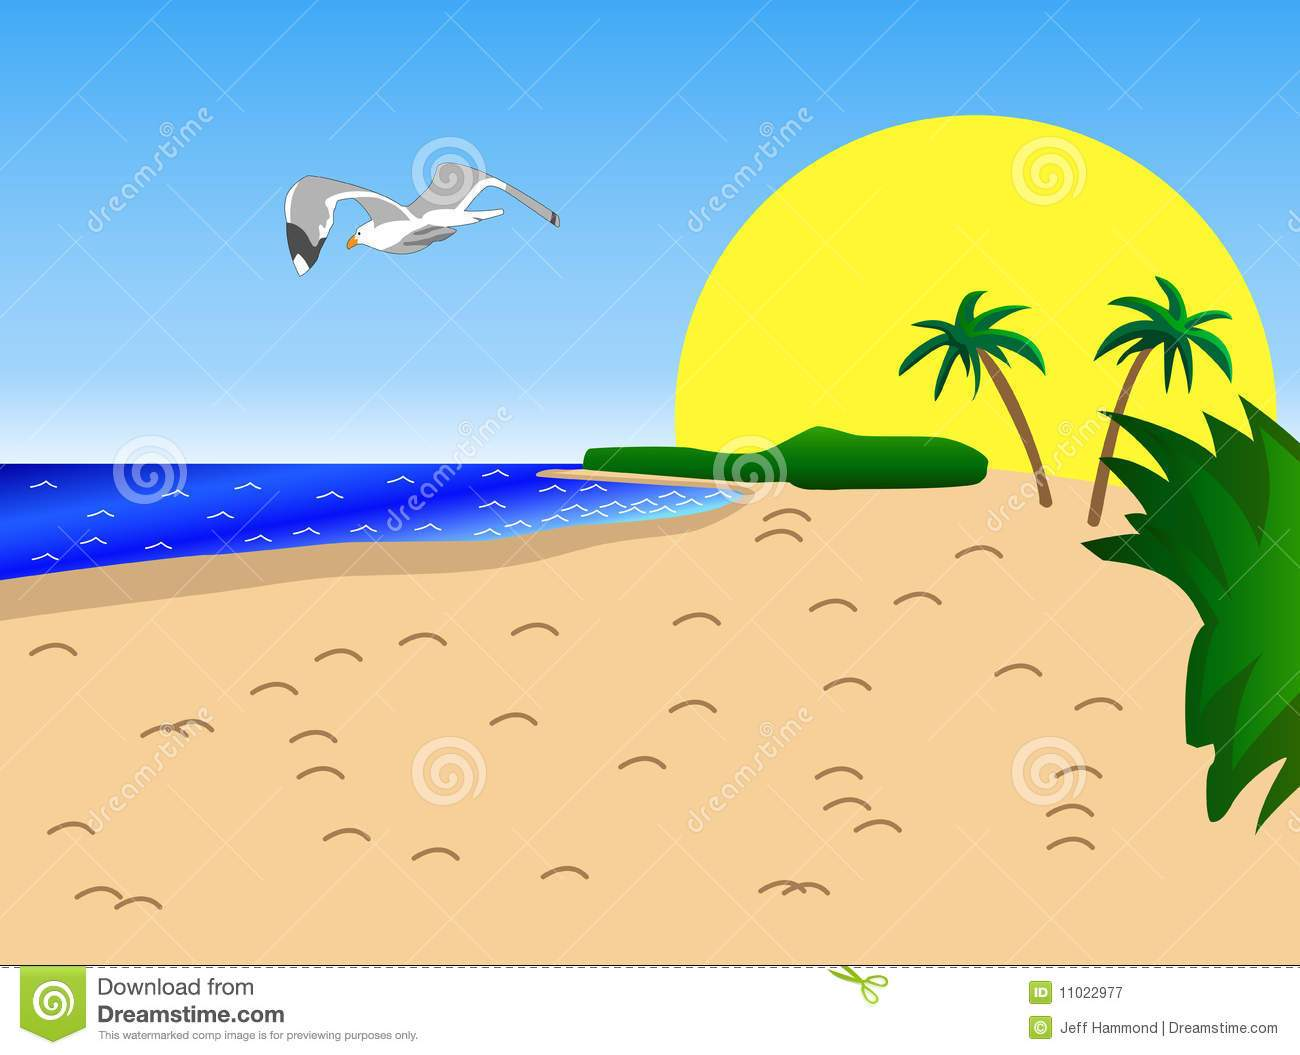 Plage clipart graphic freeuse Plage clipart 3 » Clipart Portal graphic freeuse